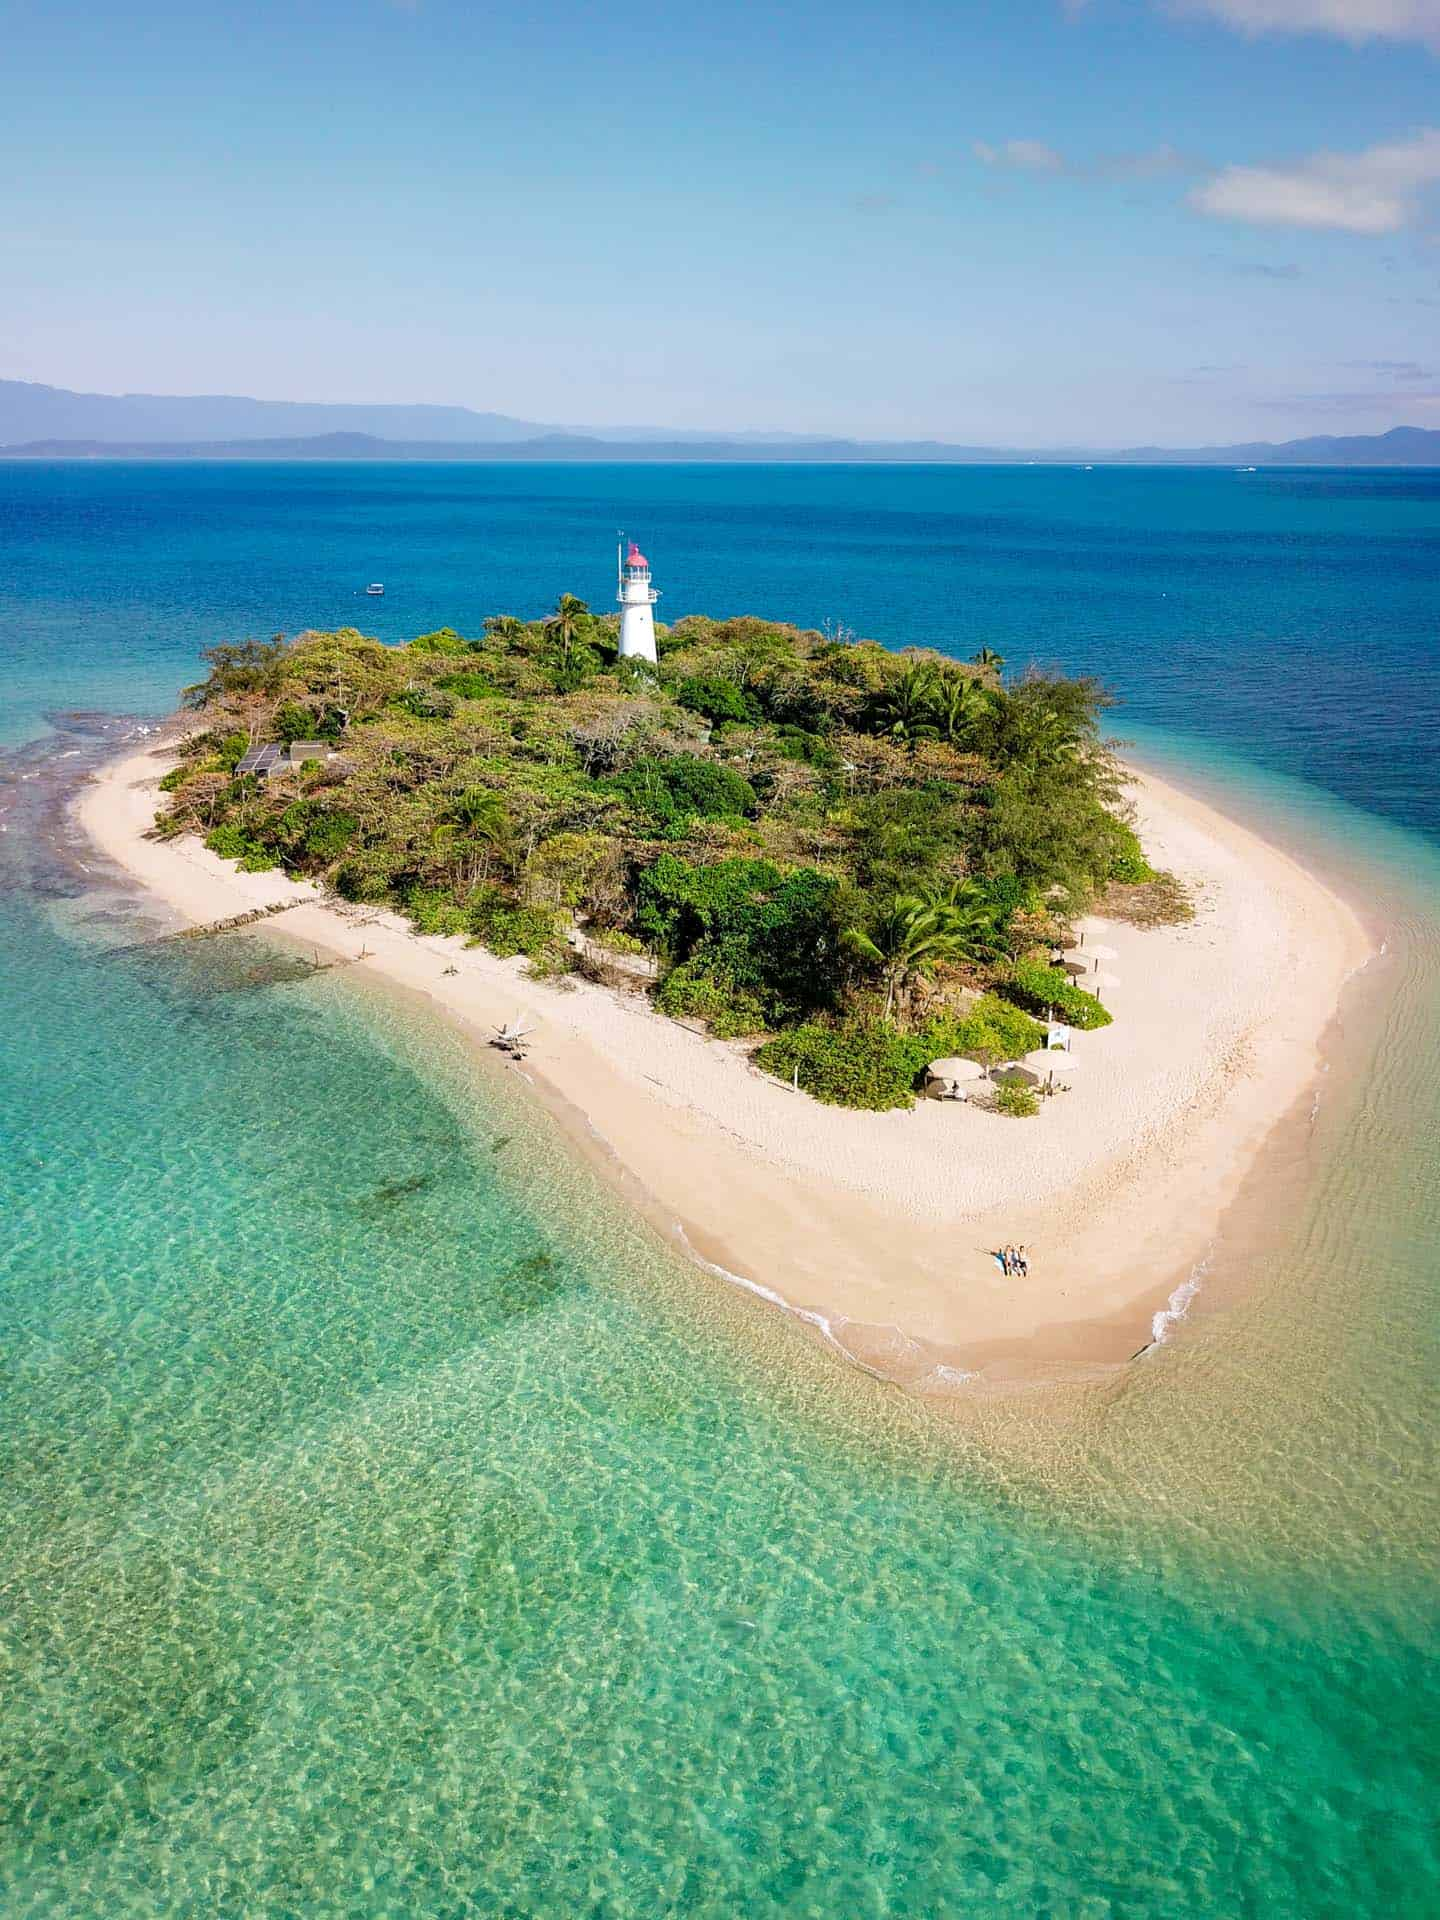 A couple on a deserted islaned.  An aerial photo of Low Isles, Port Douglas, Queensland, Australia.